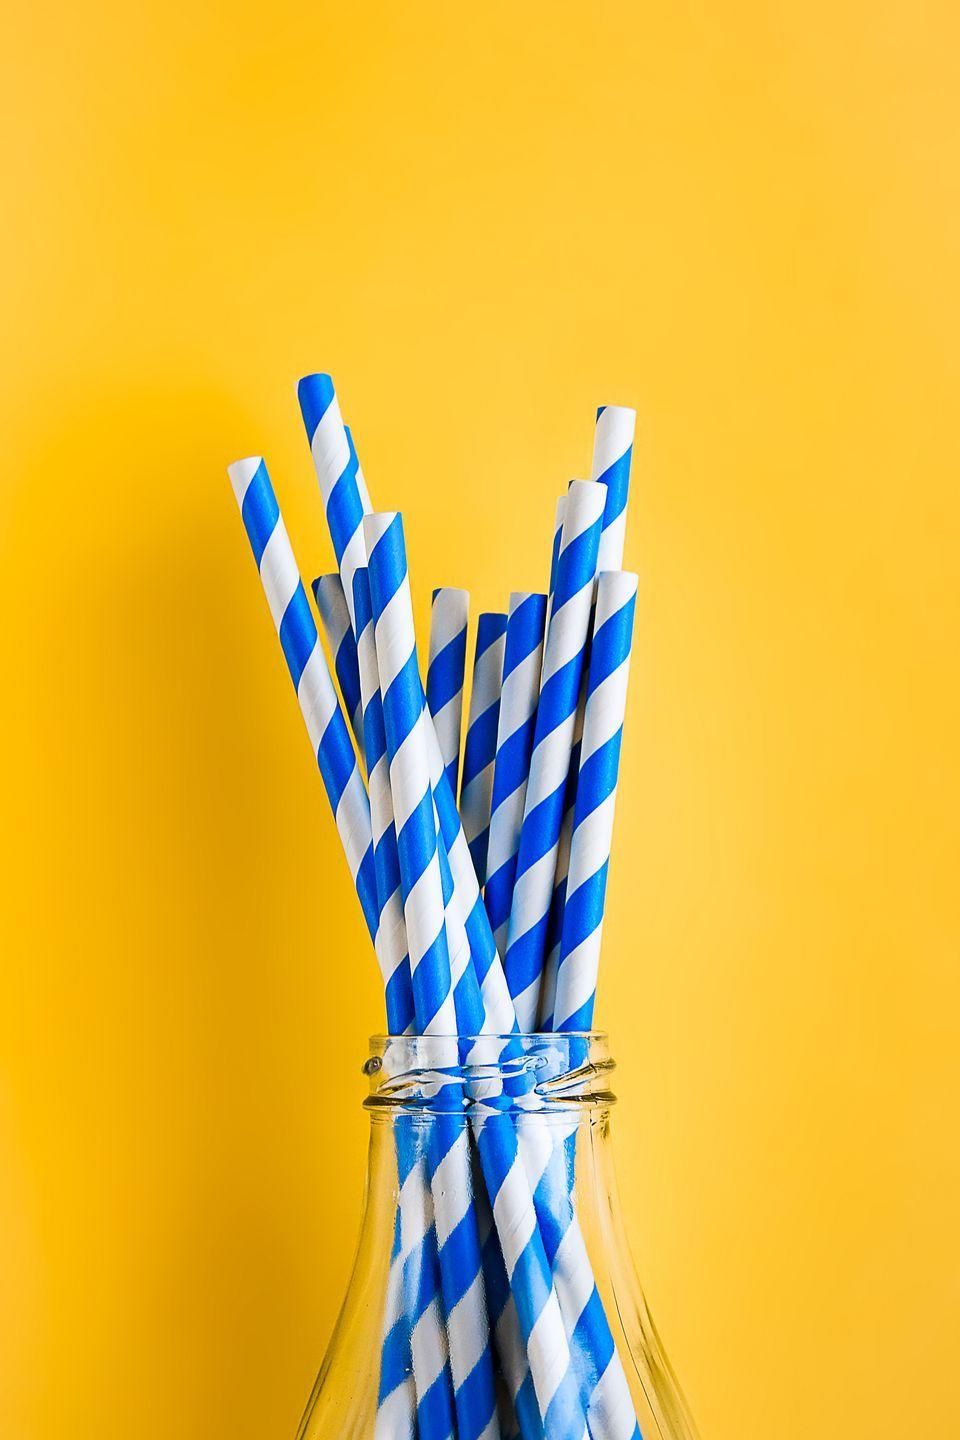 "<p>Americans use nearly <a href=""https://www.strawlessocean.org/faq/"" rel=""nofollow noopener"" target=""_blank"" data-ylk=""slk:500 million plastic straws every day"" class=""link rapid-noclick-resp"">500 million plastic straws every day</a>. Replace your plastic straws with <a href=""https://www.goodhousekeeping.com/home-products/a22561665/best-reusable-straws/"" rel=""nofollow noopener"" target=""_blank"" data-ylk=""slk:a set of reusable ones"" class=""link rapid-noclick-resp"">a set of reusable ones</a> made from stainless steel, silicone, or bamboo — the sea turtles will thank you.</p>"